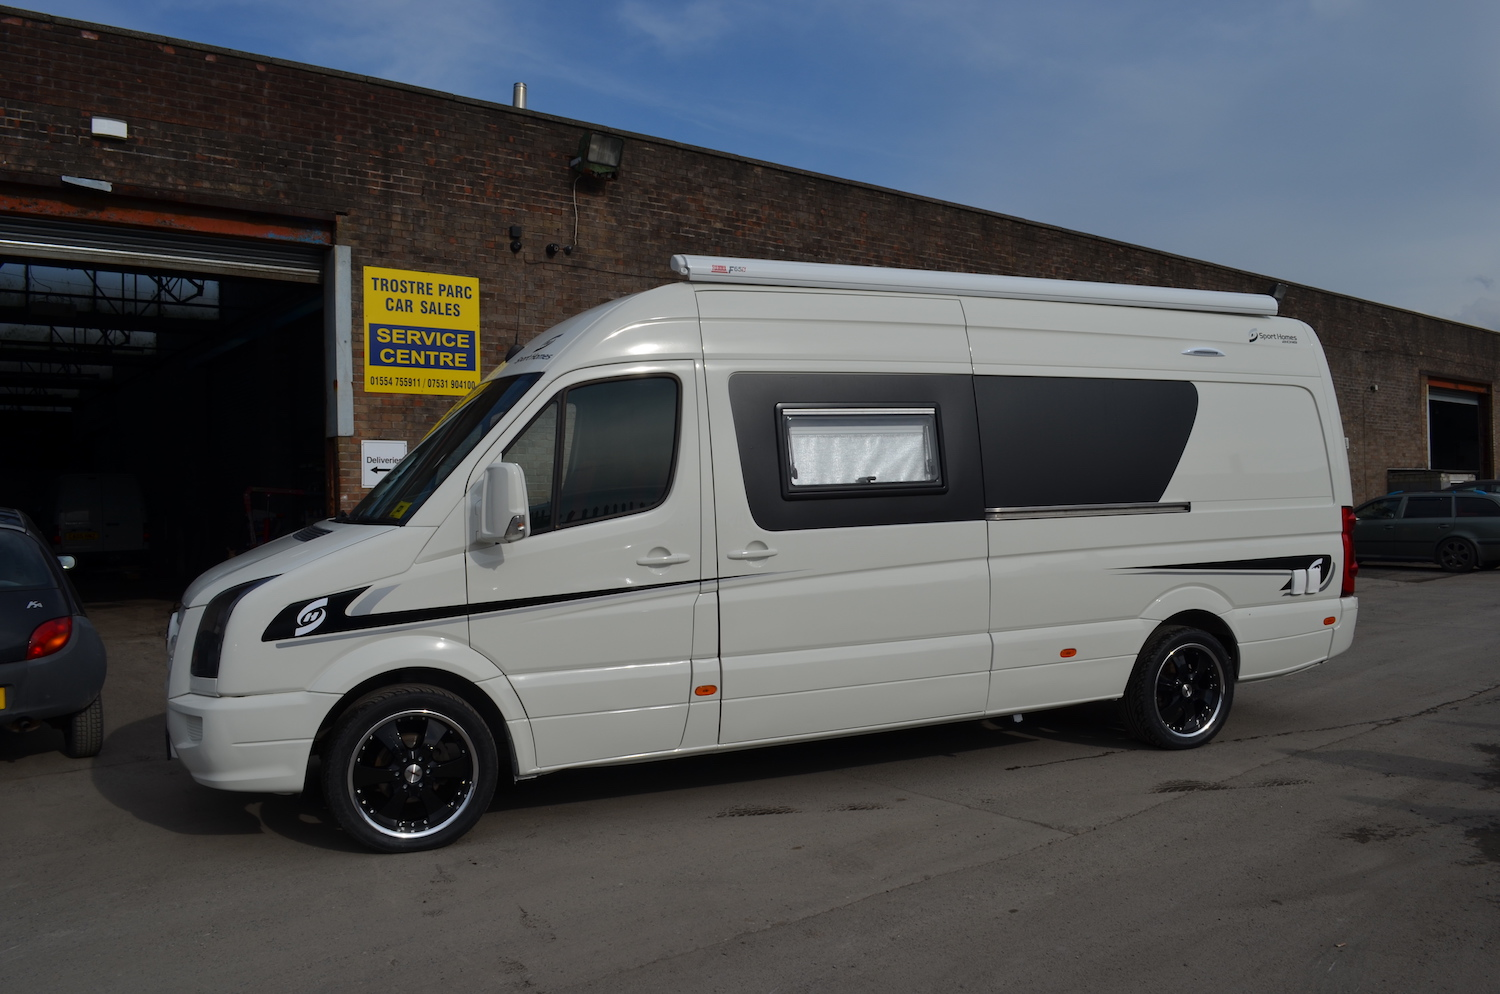 2010 Vw Crafter Race Van Camper Welsh Coast Campers